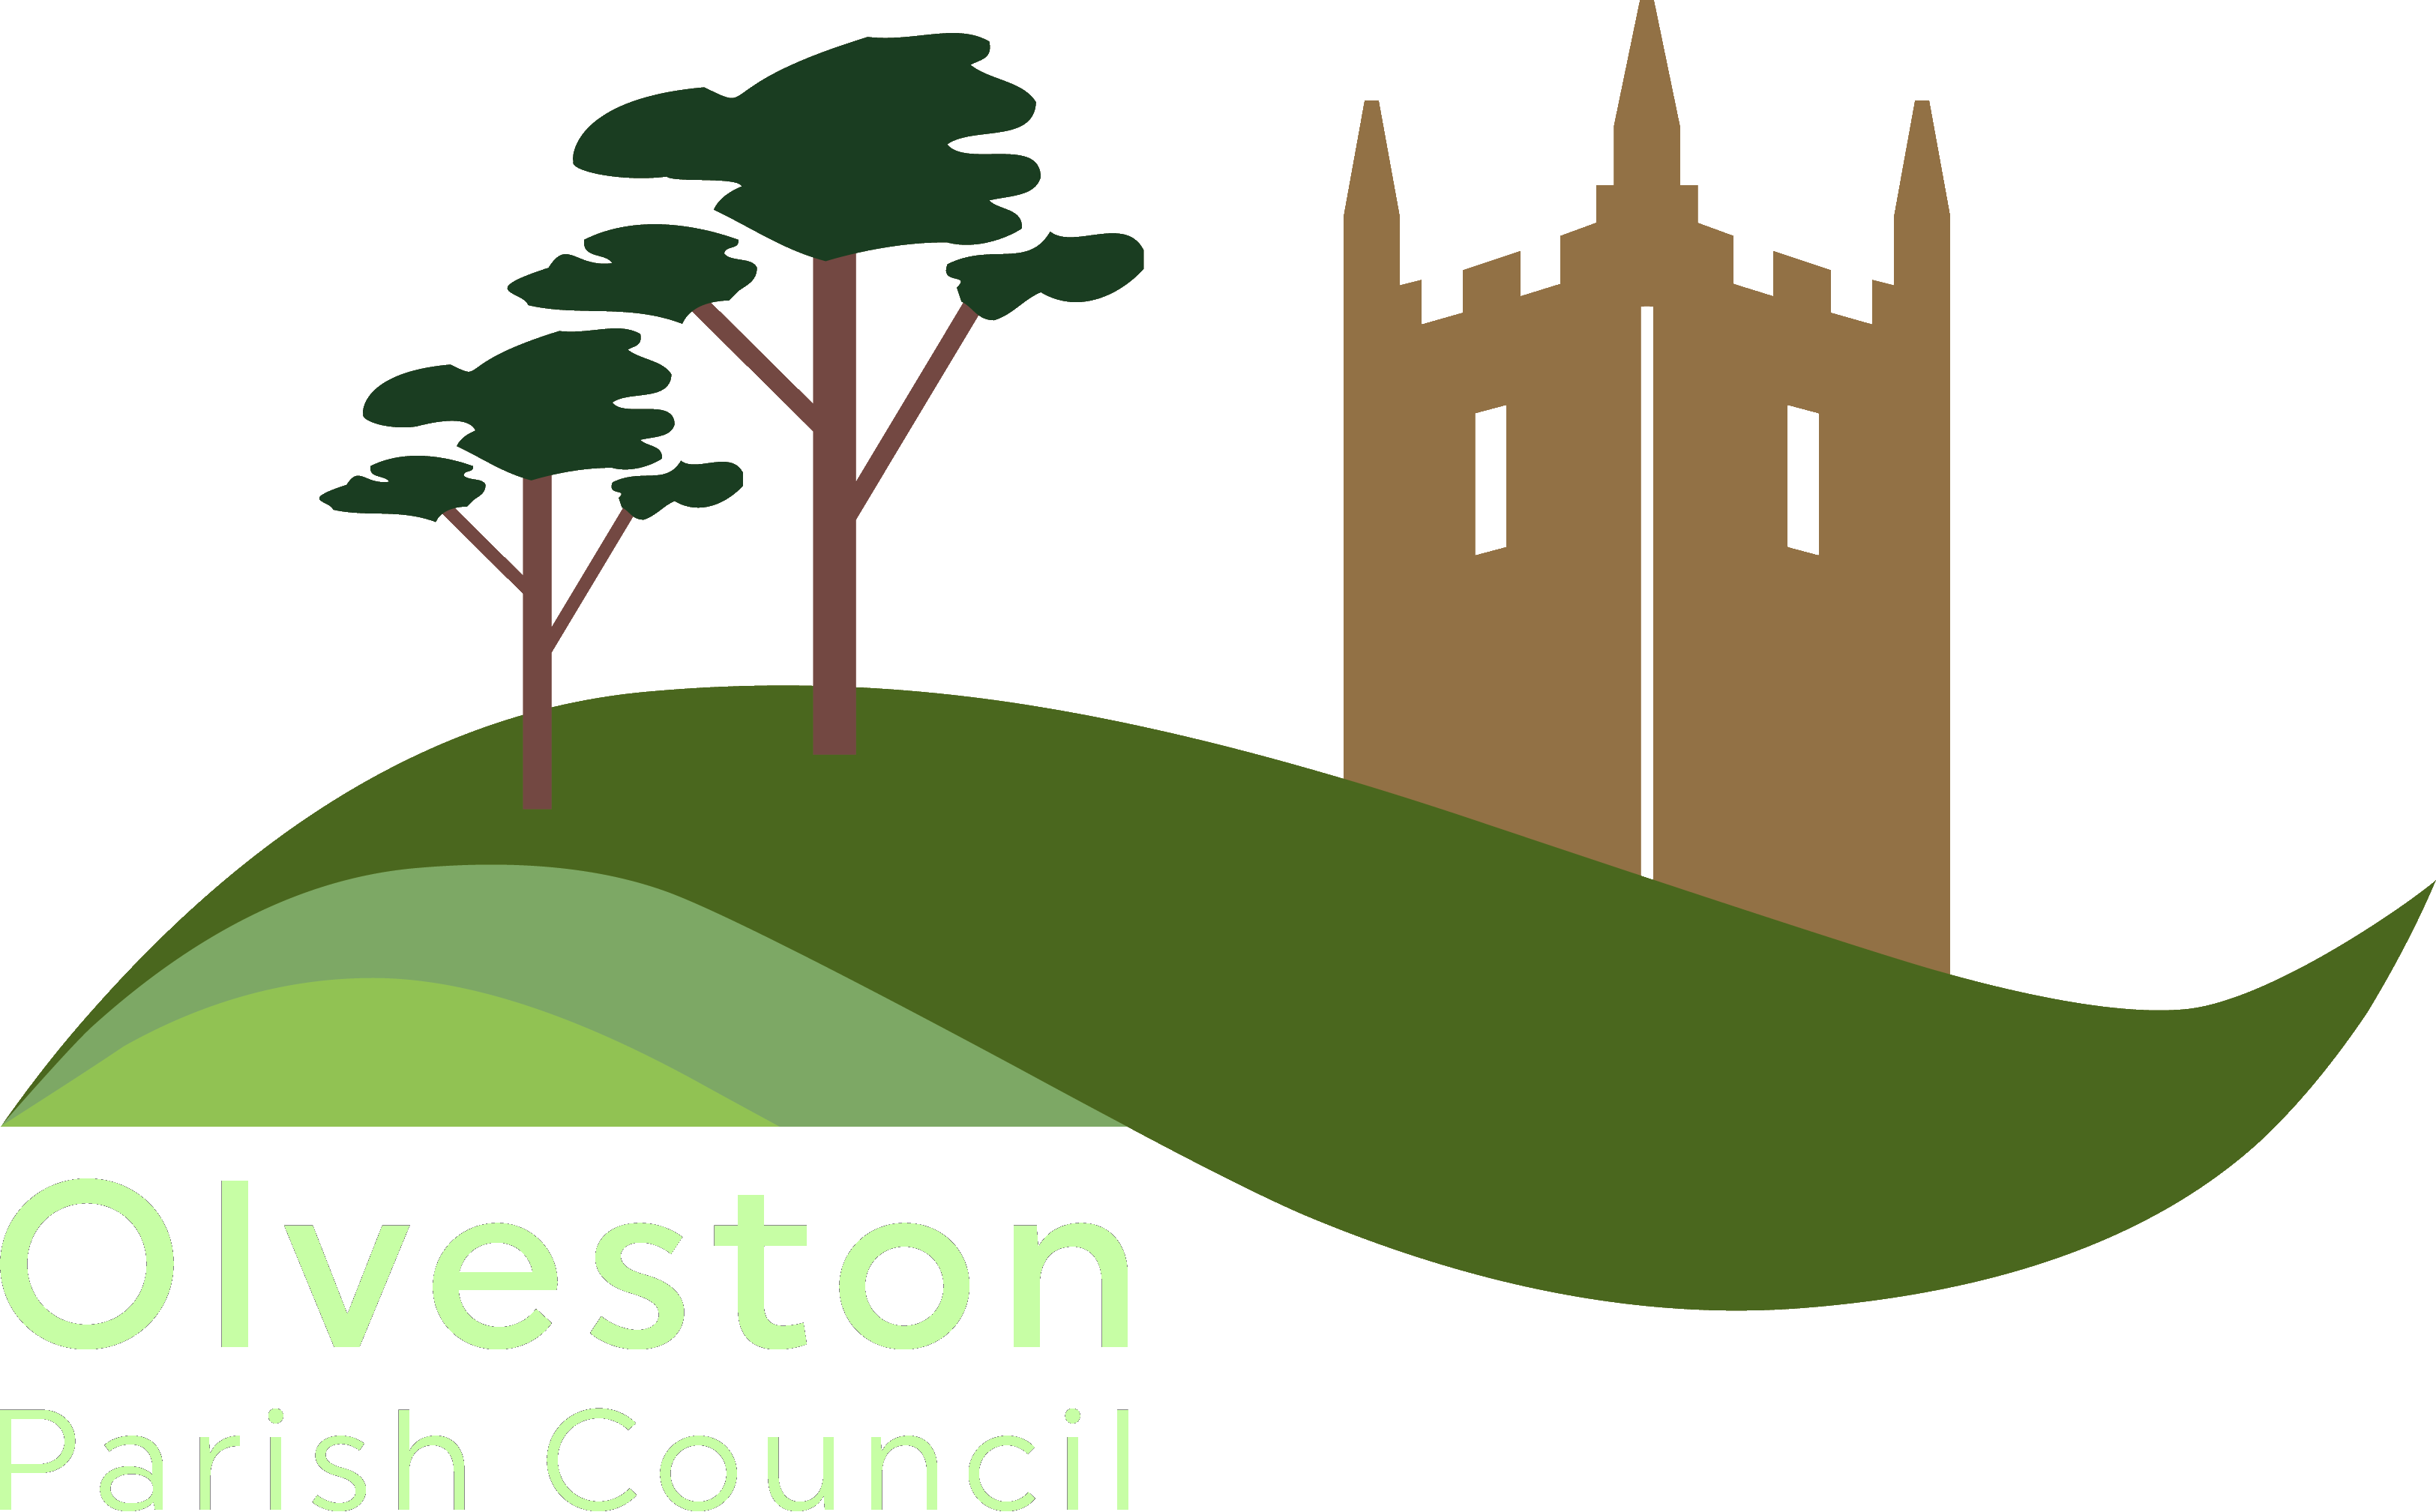 Olveston Parish Council